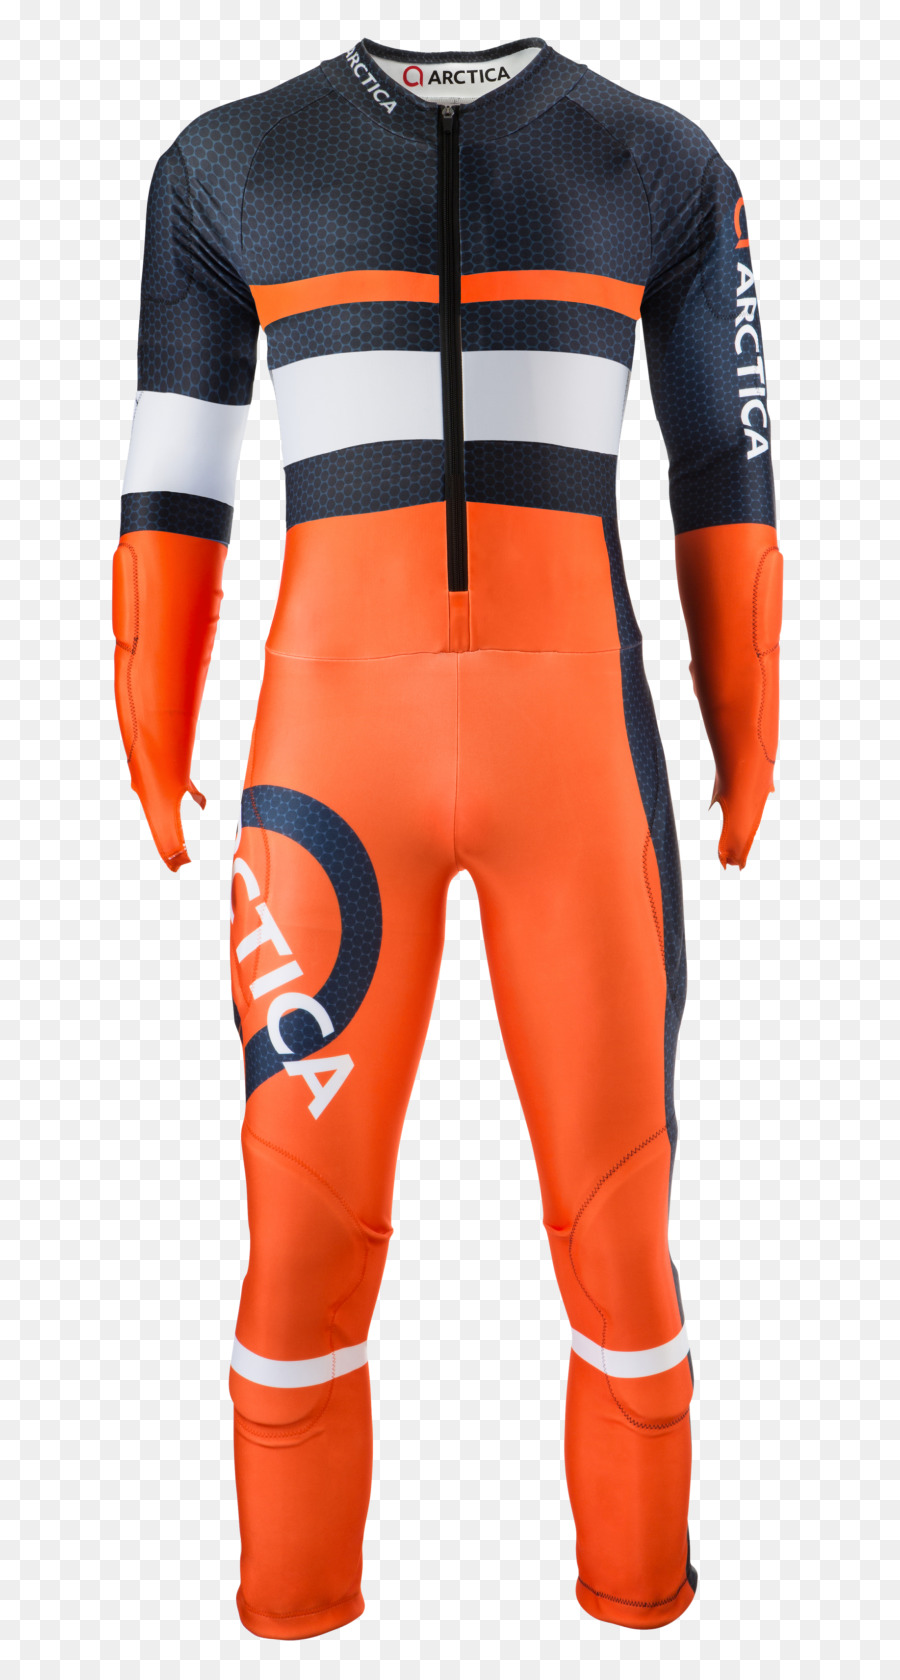 ae0c1a091c Arctica Speedsuit Ski suit - others png download - 824 1680 - Free  Transparent Arctica png Download.